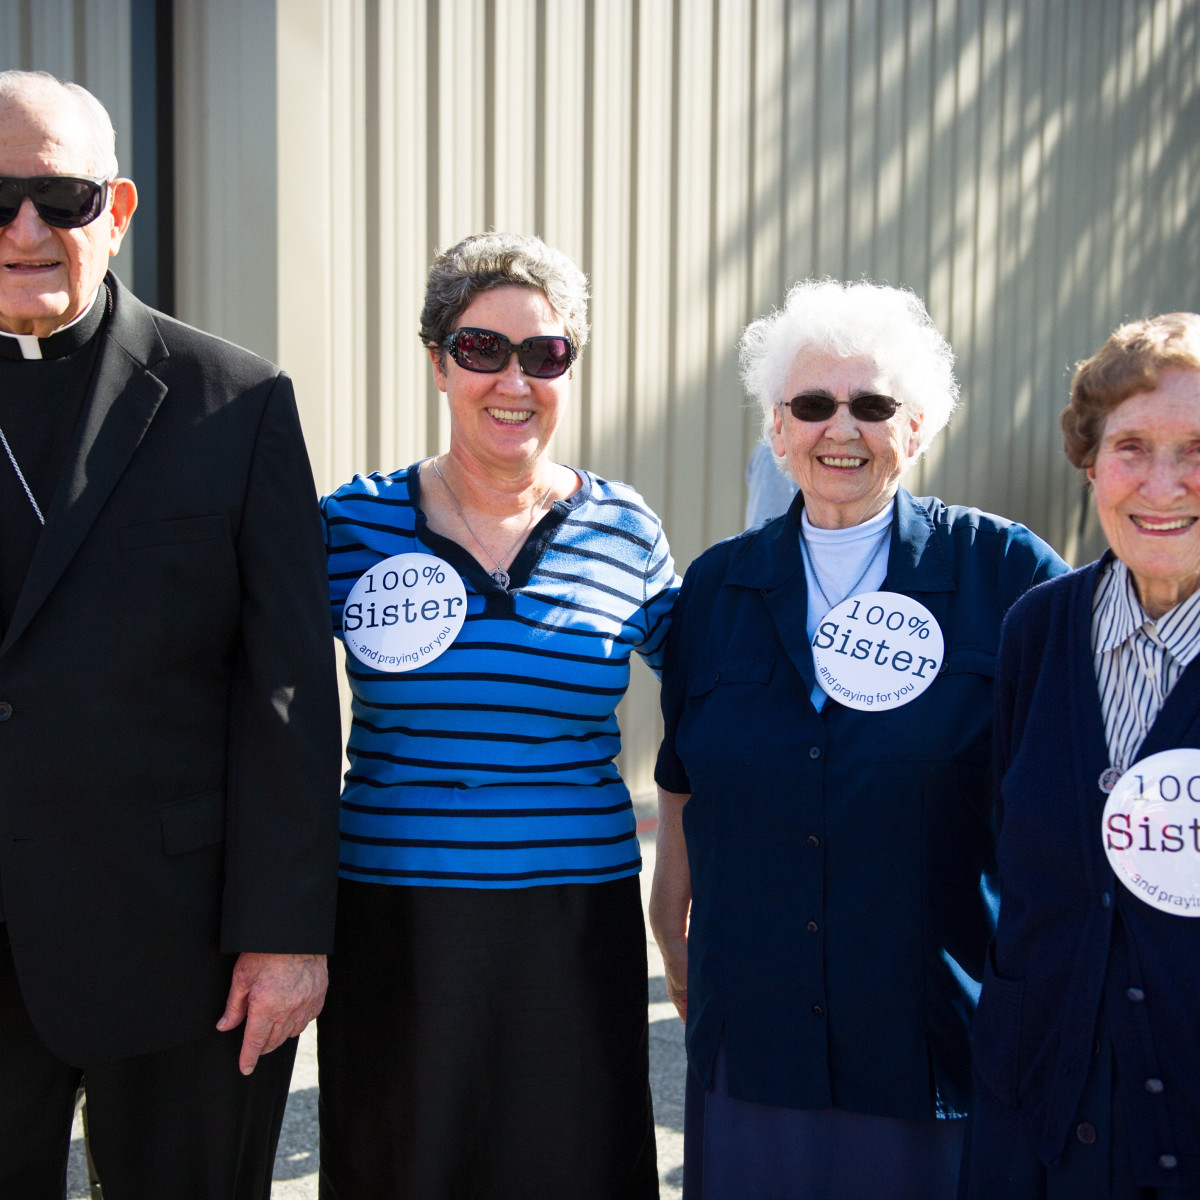 Christus Nun Run Archbishop Emeritus Joseph Fiorenza, Sister Kevina Keating and Sisters of Charity of the Incarnate Word